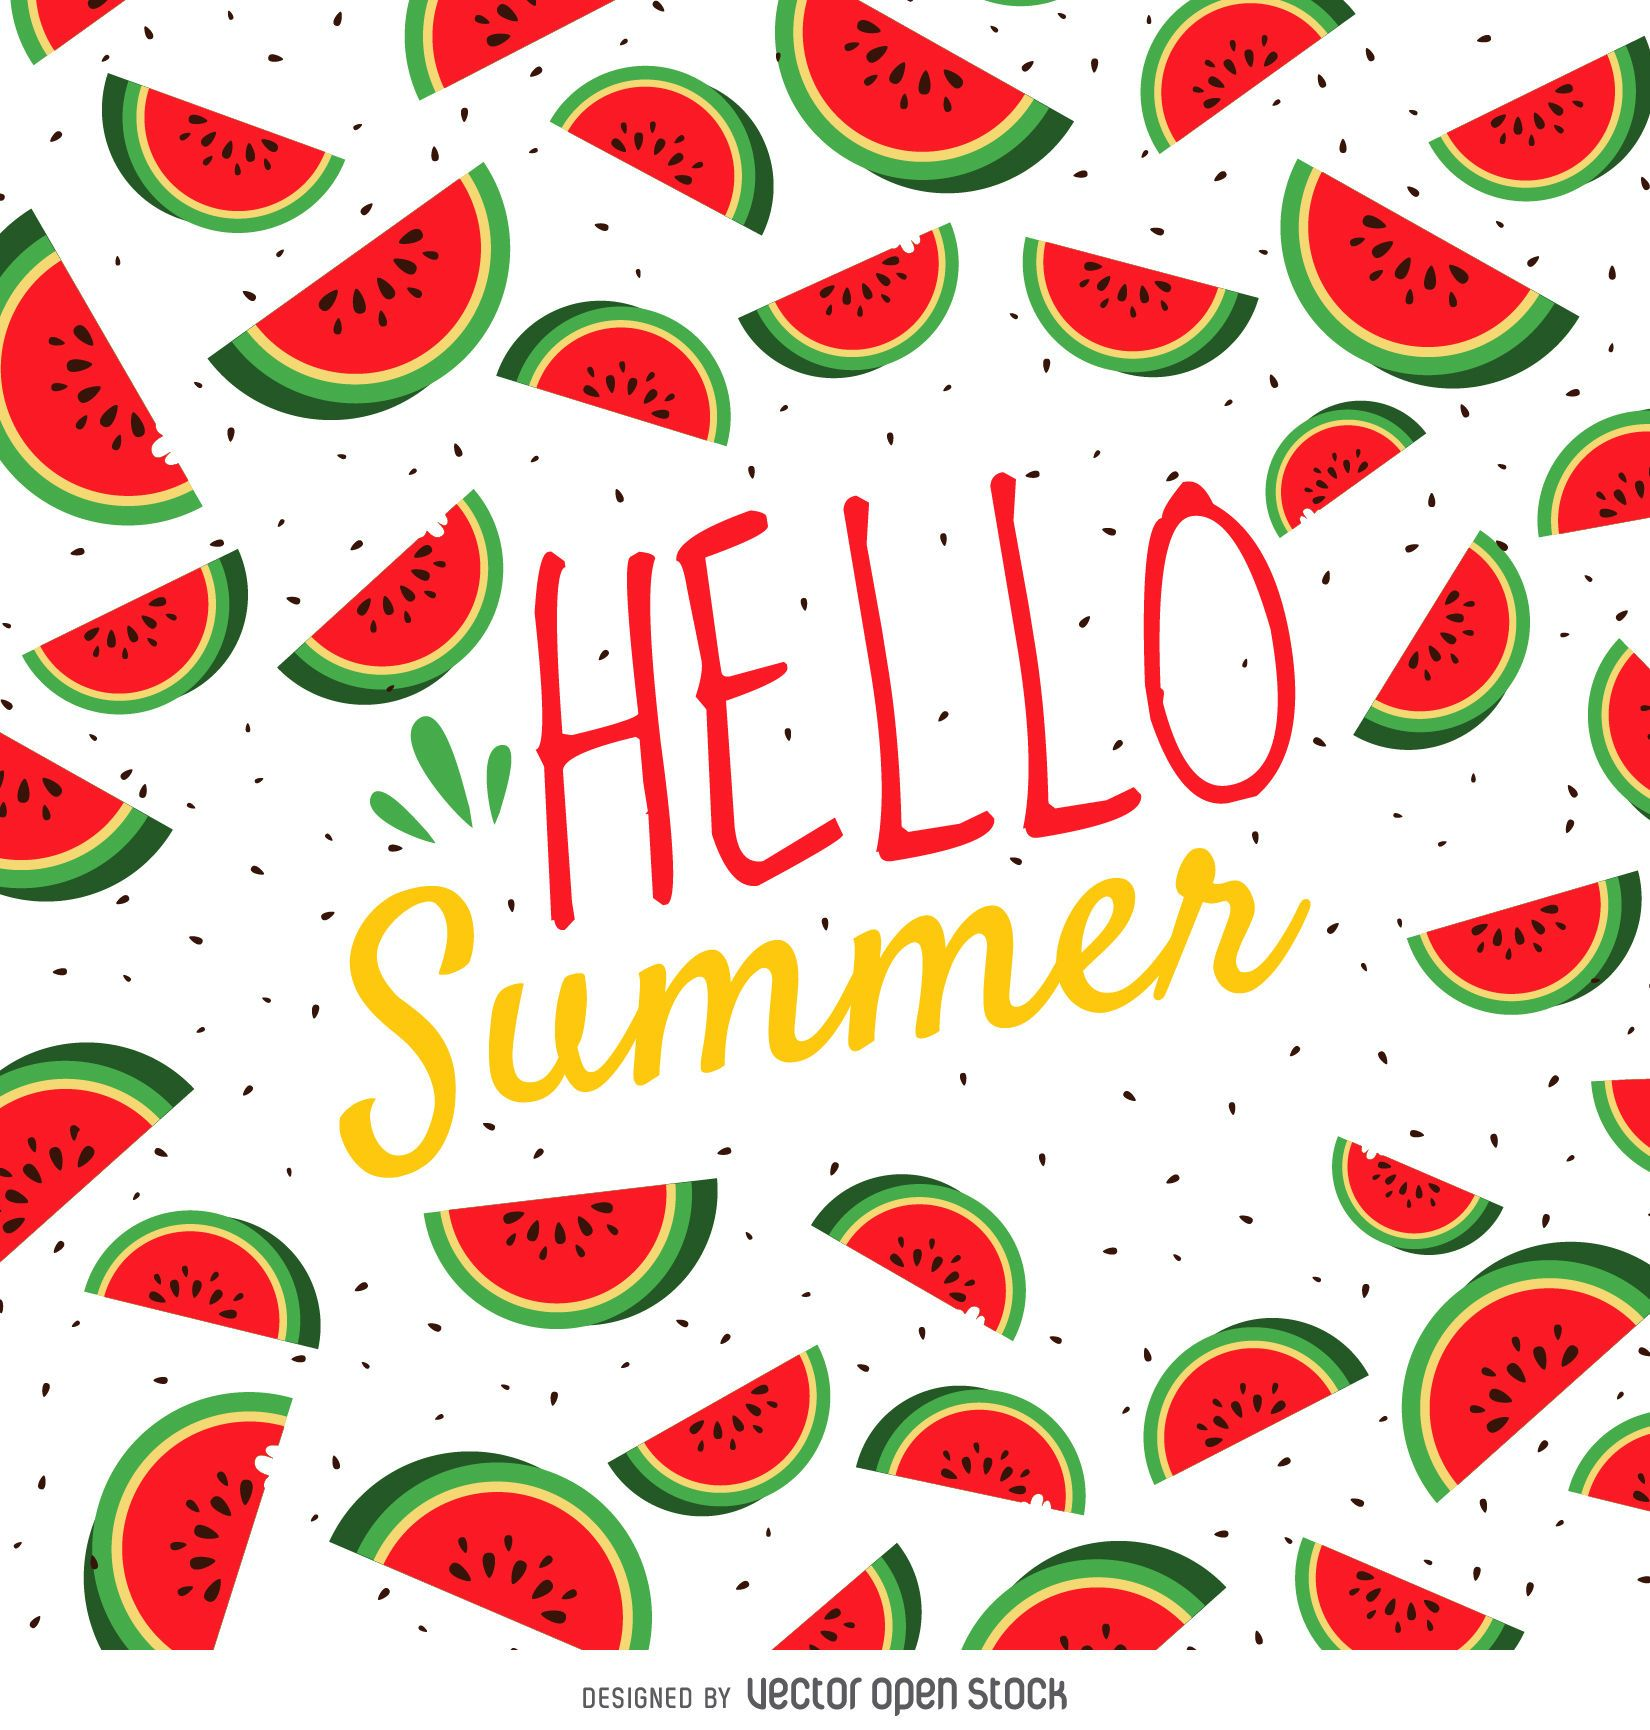 Summer watermelon poster - Vector download